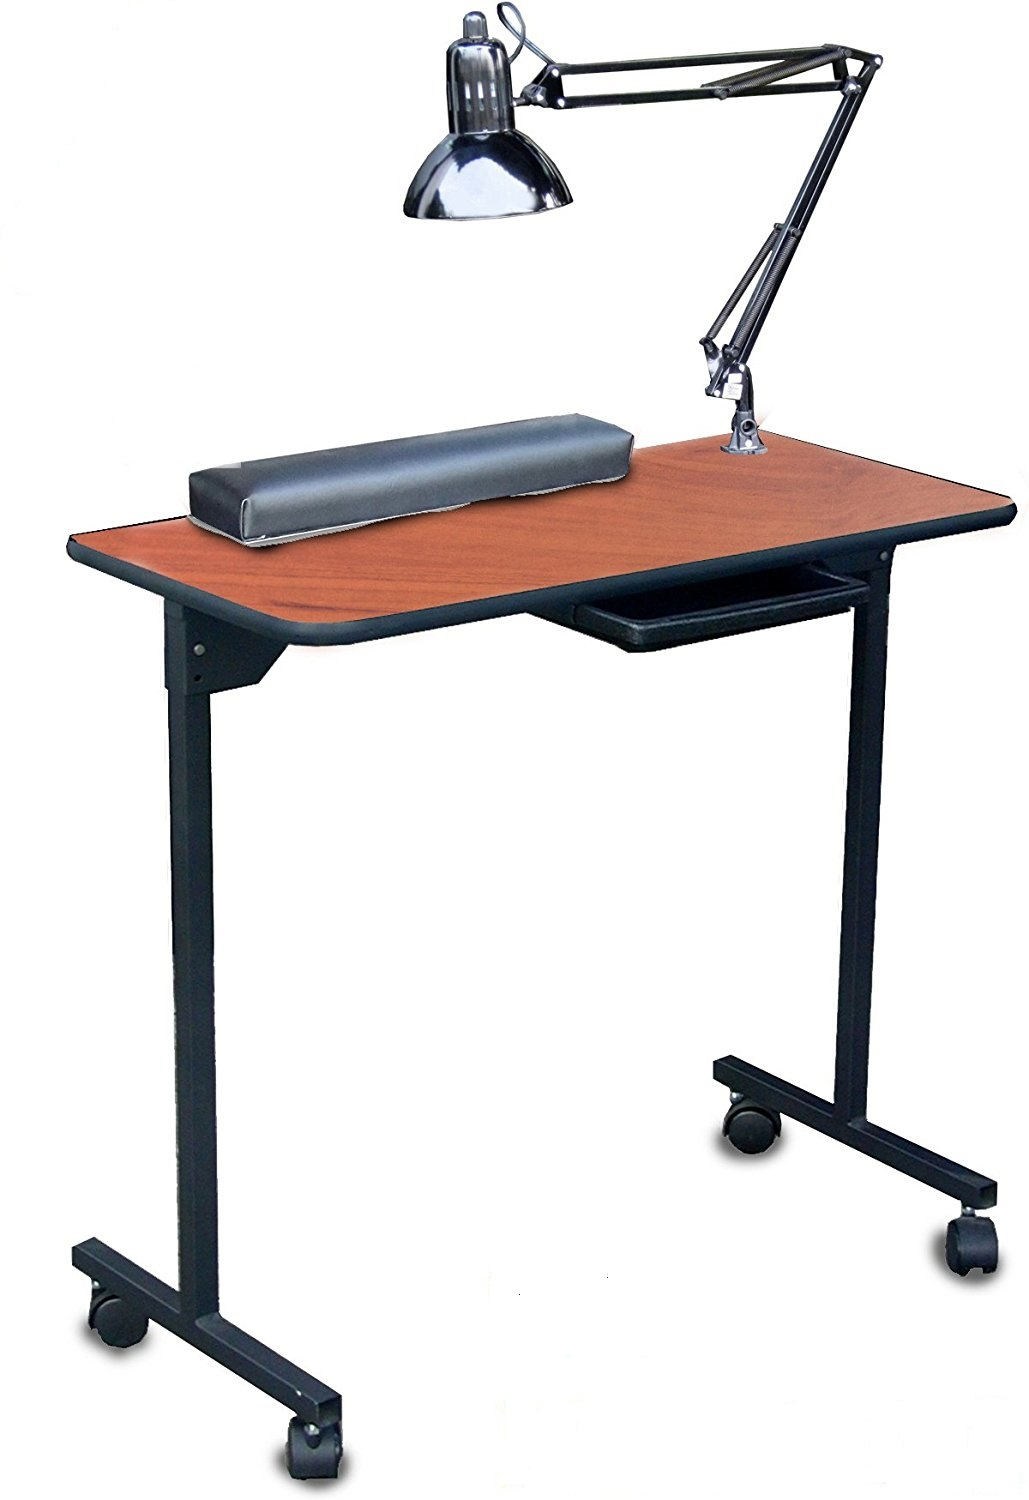 Manicure Table For Sale >> Kayline 401 Portable Manicure Table + Free Shipping